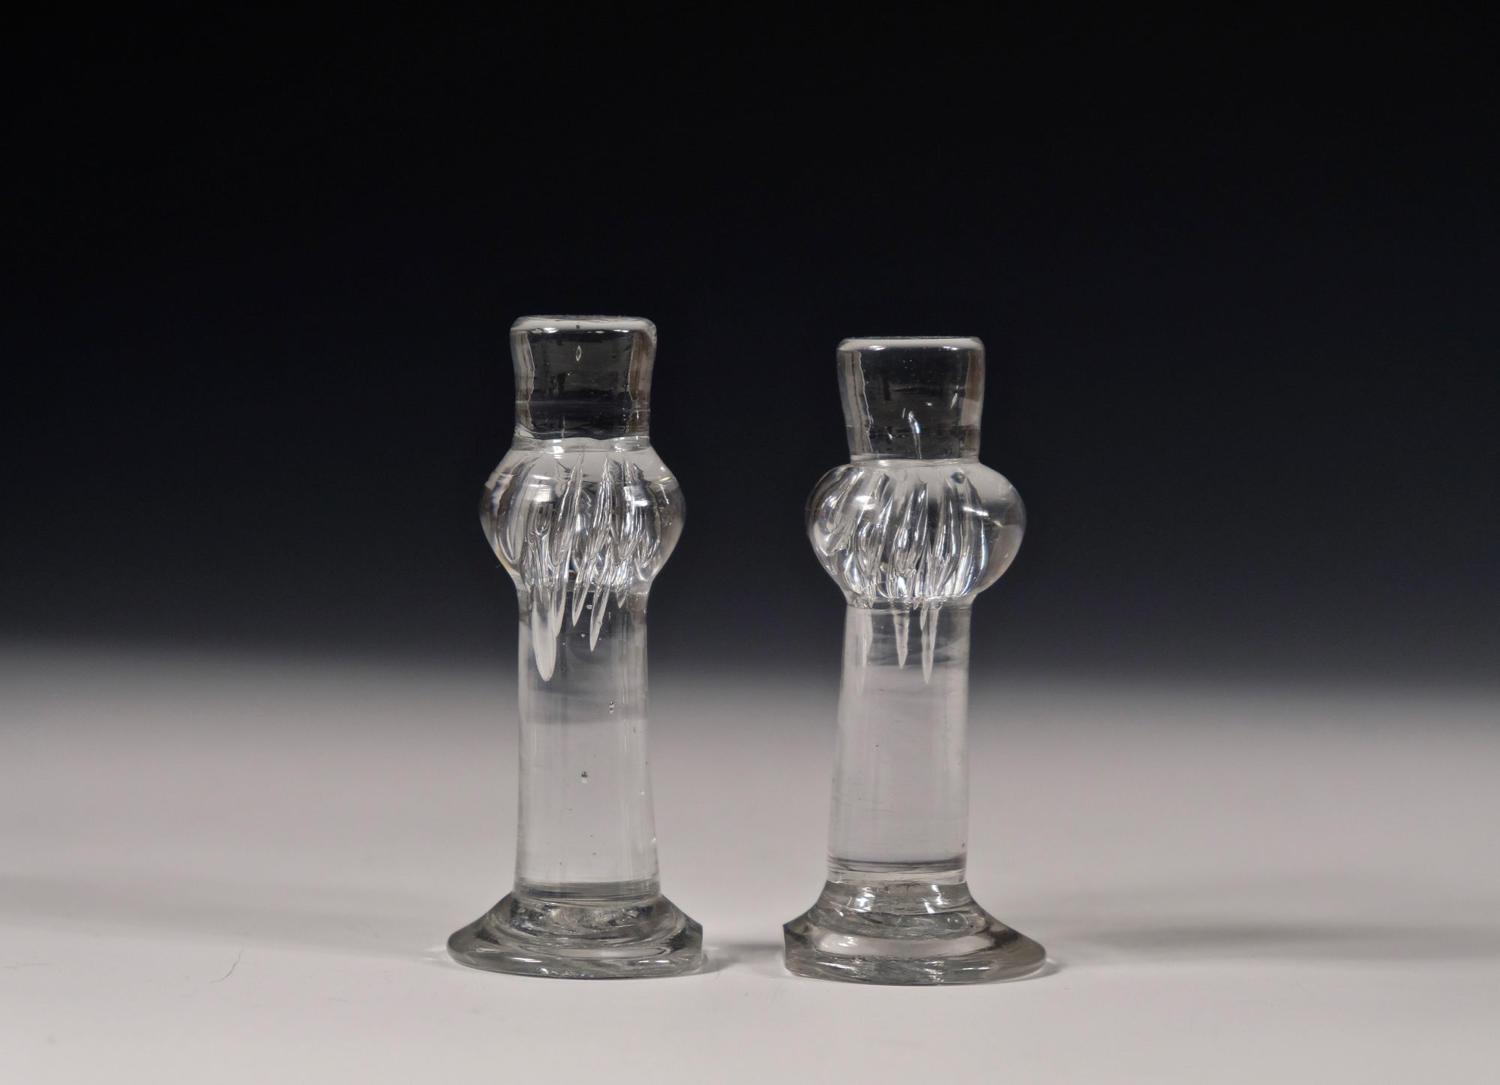 Pair of table stands / pillars English C1730-50